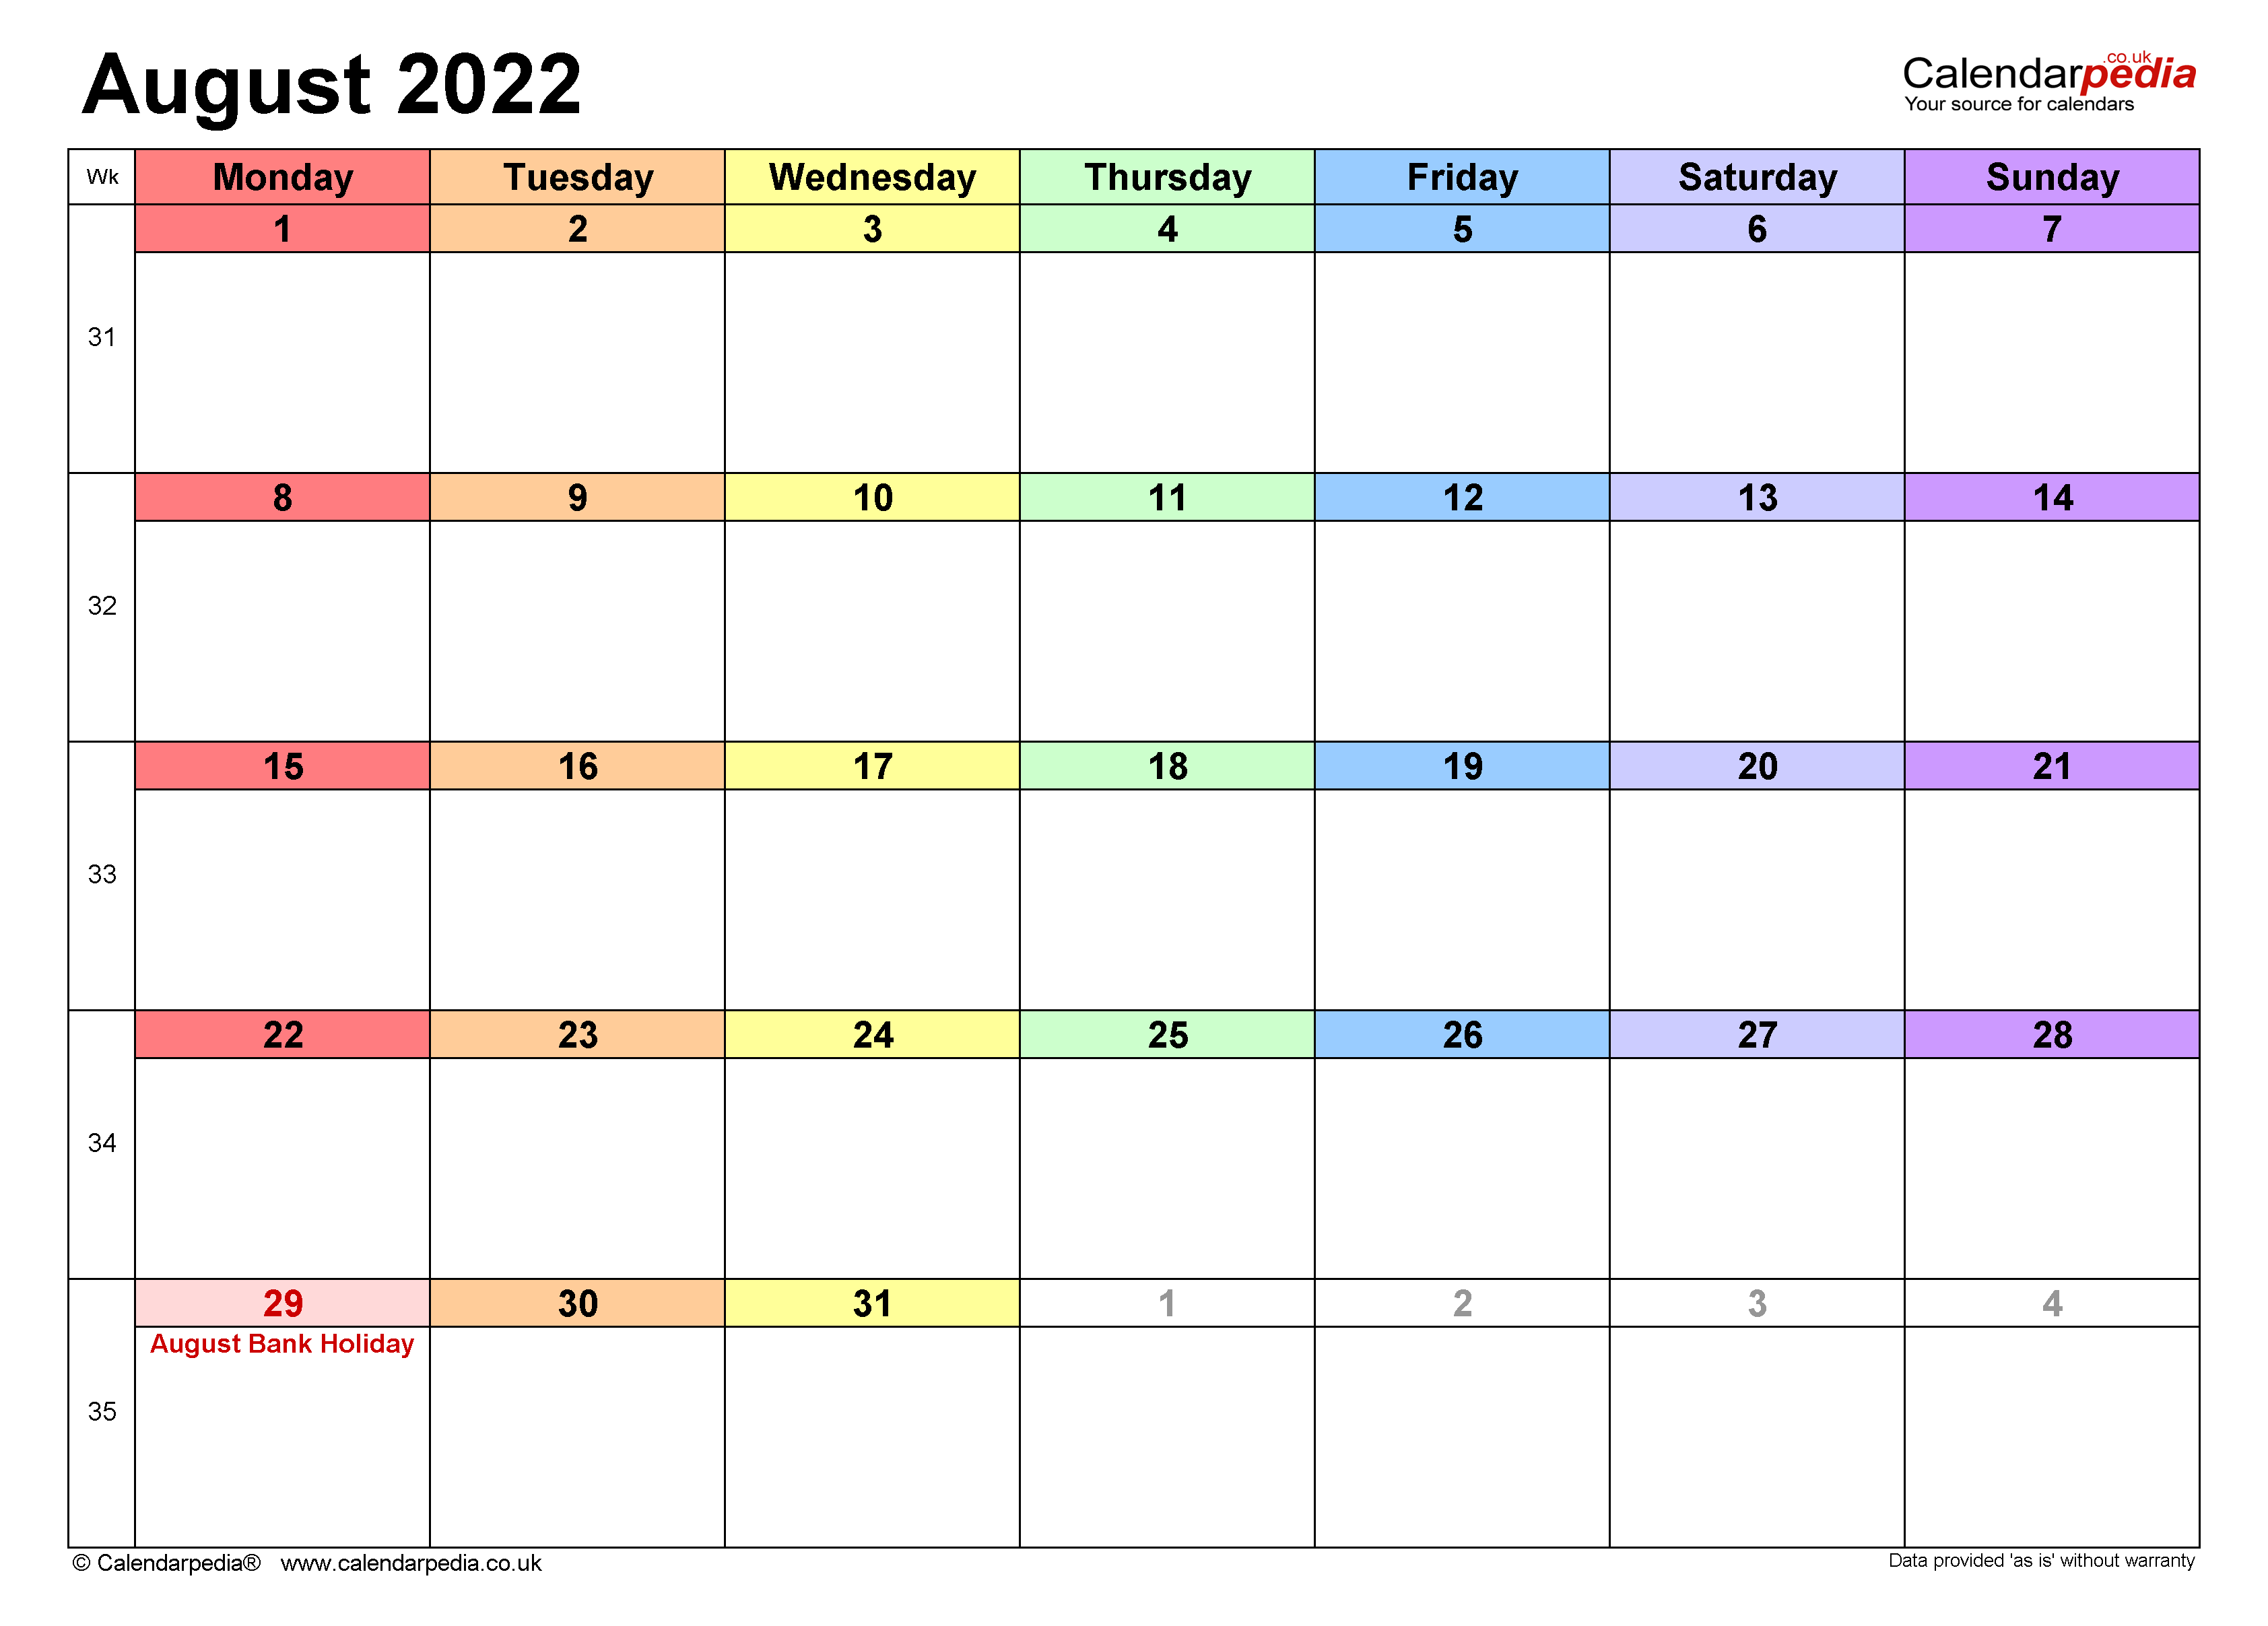 Calendar August 2022 UK with Excel, Word and PDF templates